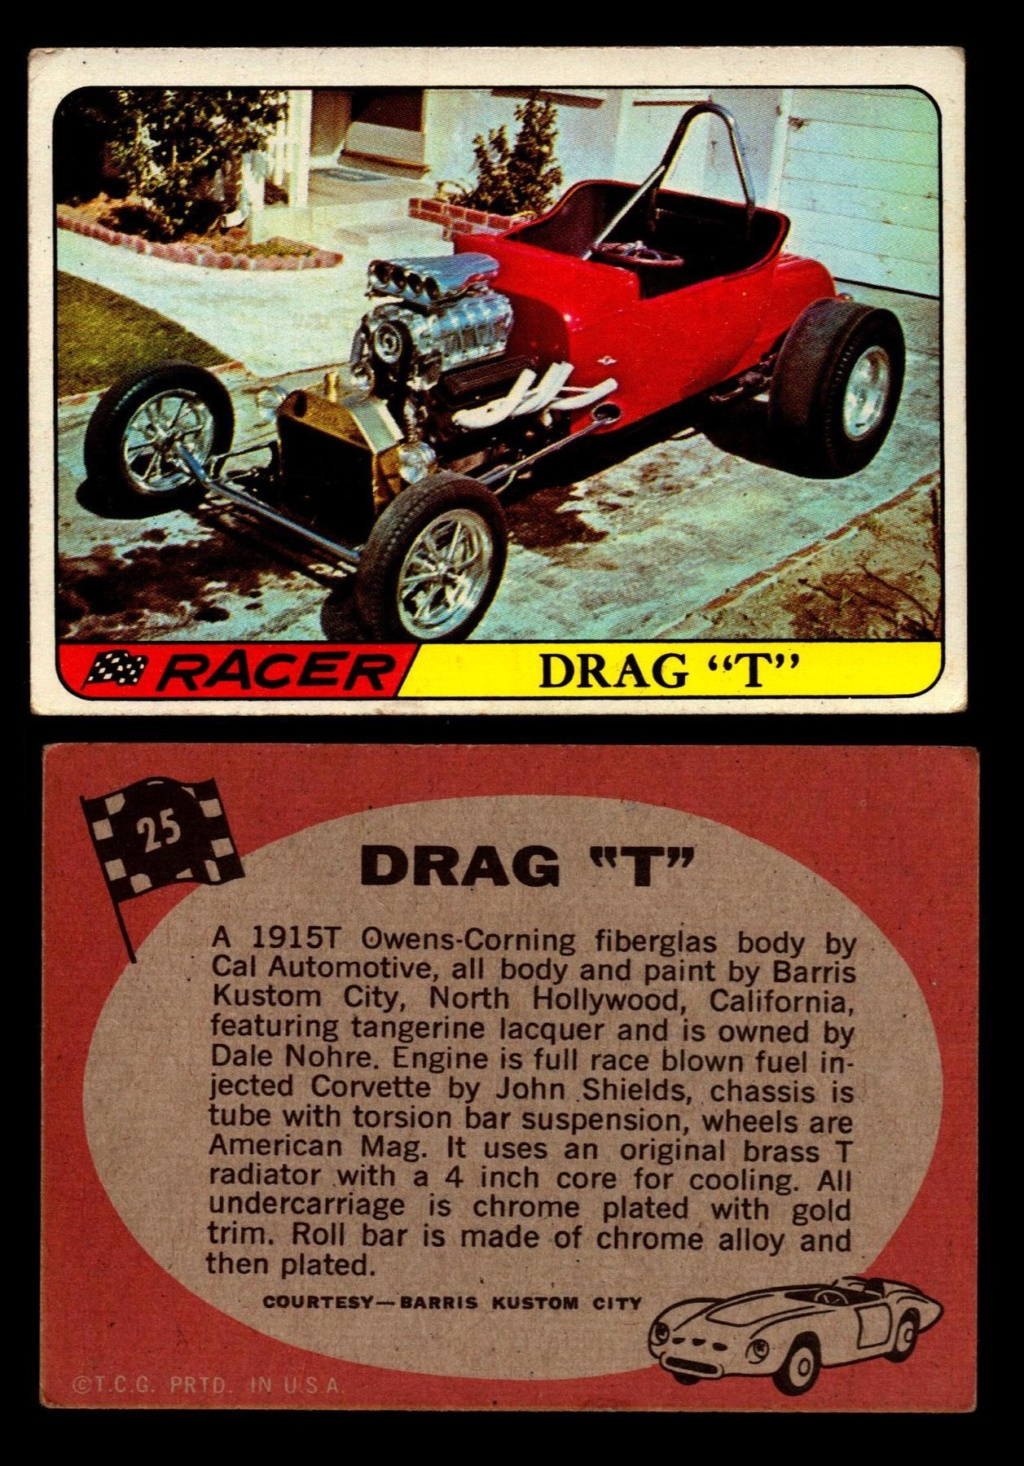 Hot Rods Topps - Vintage Trading Cards 1968 - Custom car - Dragster - Racer - Dream car - Barris Kustom City - Ed Roth Darrill Starbird, Gene Winfield, Bill Cuchenberry - Page 2 25_32a10